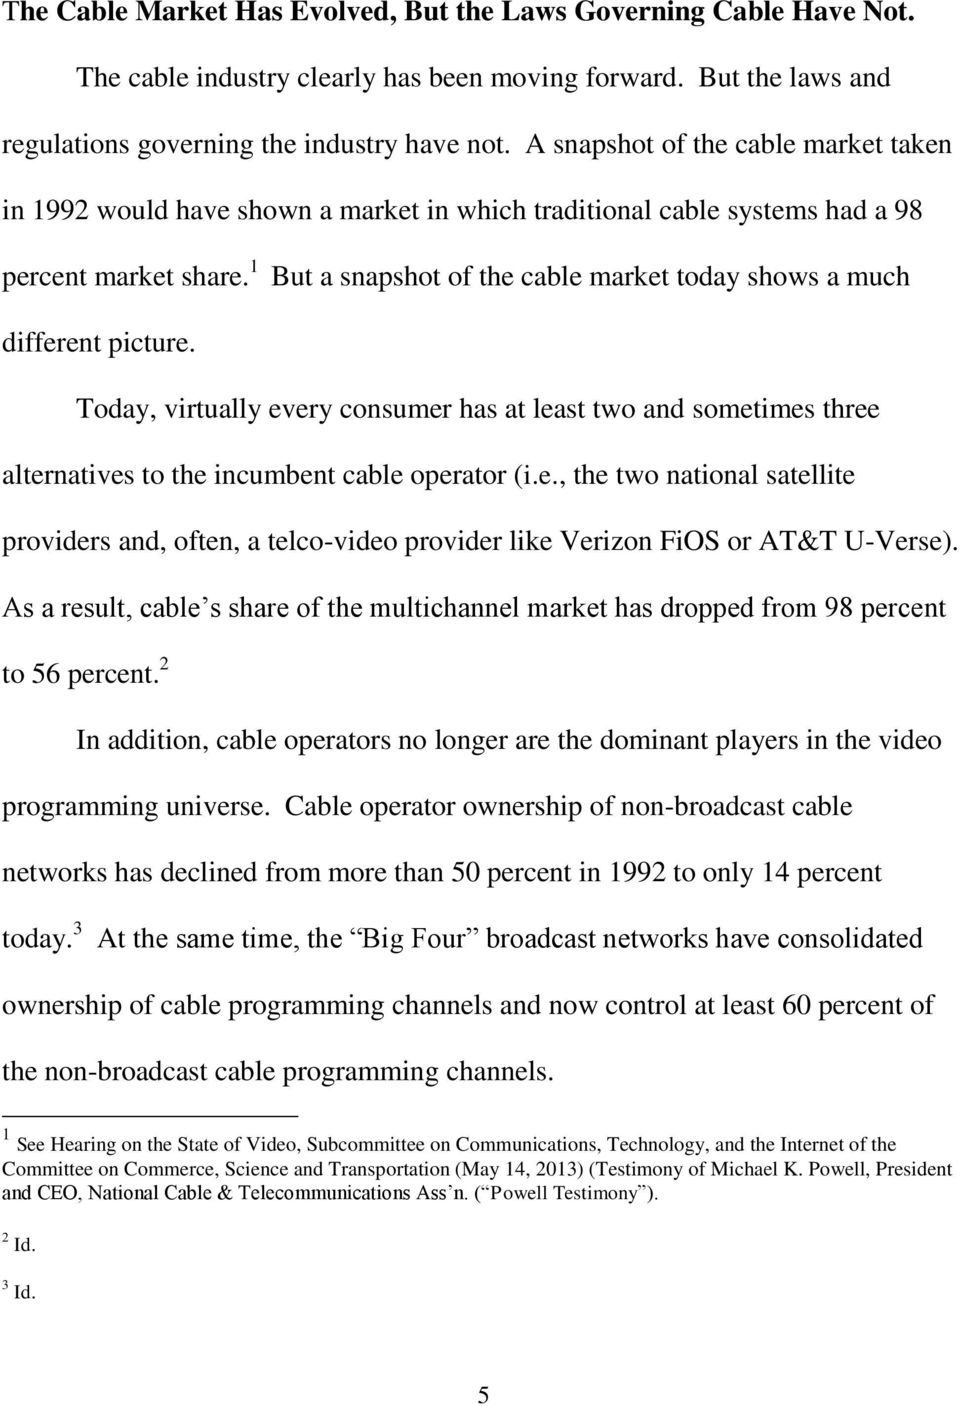 1 But a snapshot of the cable market today shows a much different picture. Today, virtually every consumer has at least two and sometimes three alternatives to the incumbent cable operator (i.e., the two national satellite providers and, often, a telco-video provider like Verizon FiOS or AT&T U-Verse).